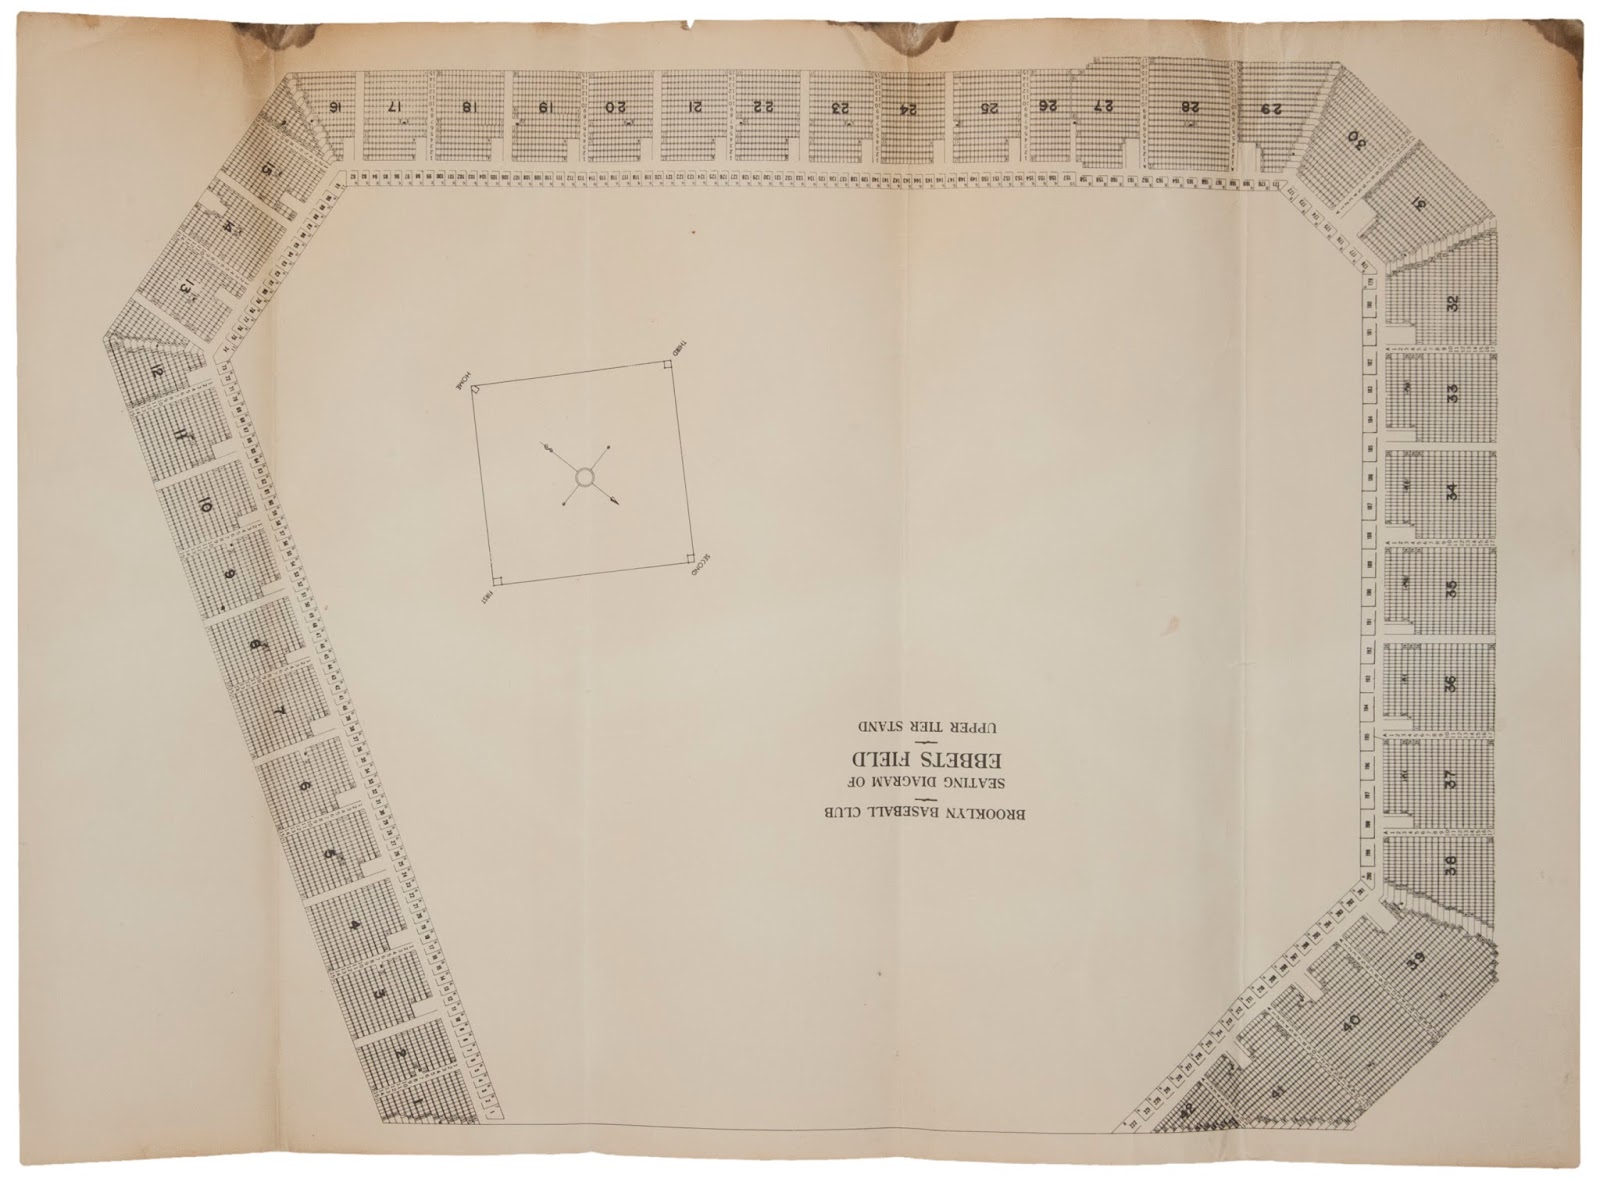 An ebbets field blueprint at goldin auctions according to the auction description it was originally found within the collection of a local ny tavern owner who counted many brooklyn players as patrons malvernweather Image collections